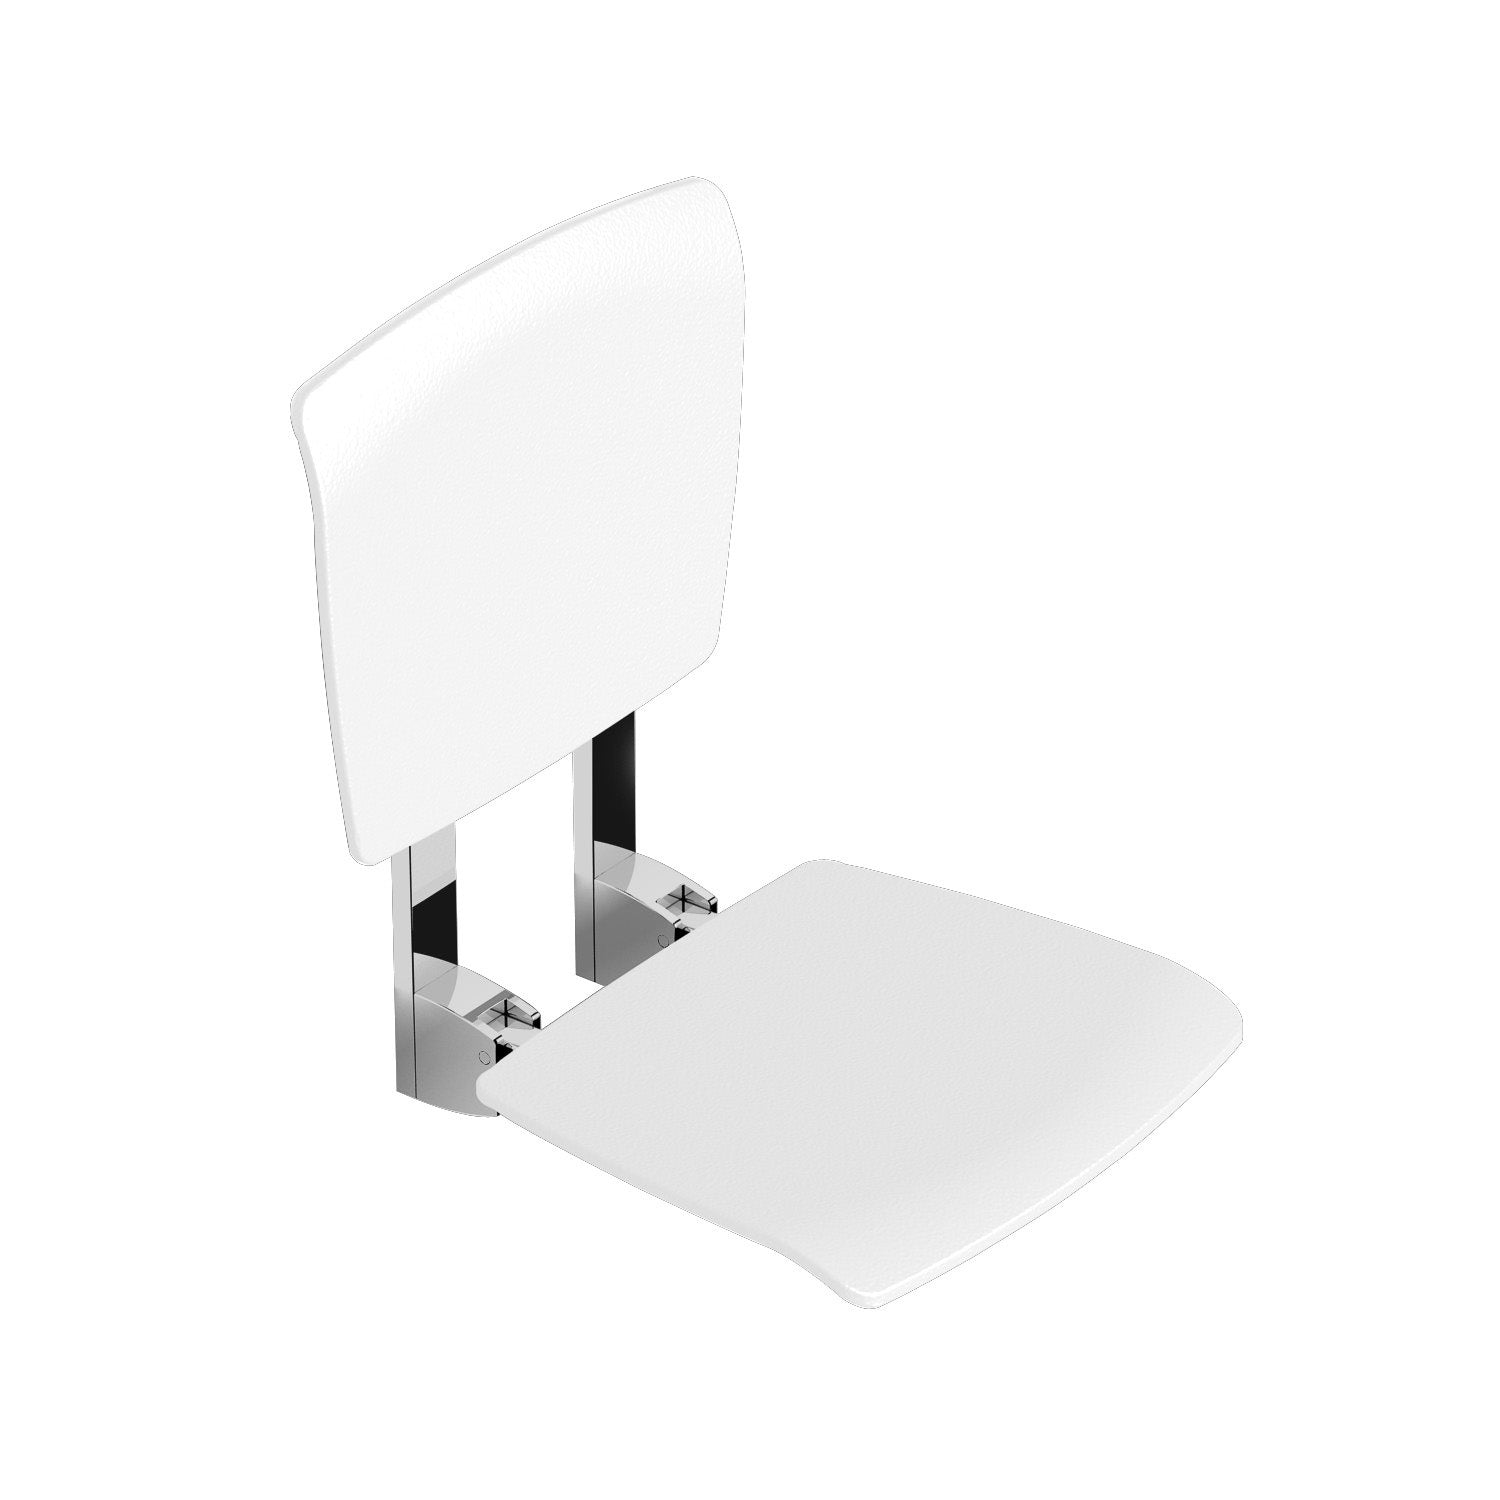 Esense Fixed Shower Seat and backrest with a white finish on a white background